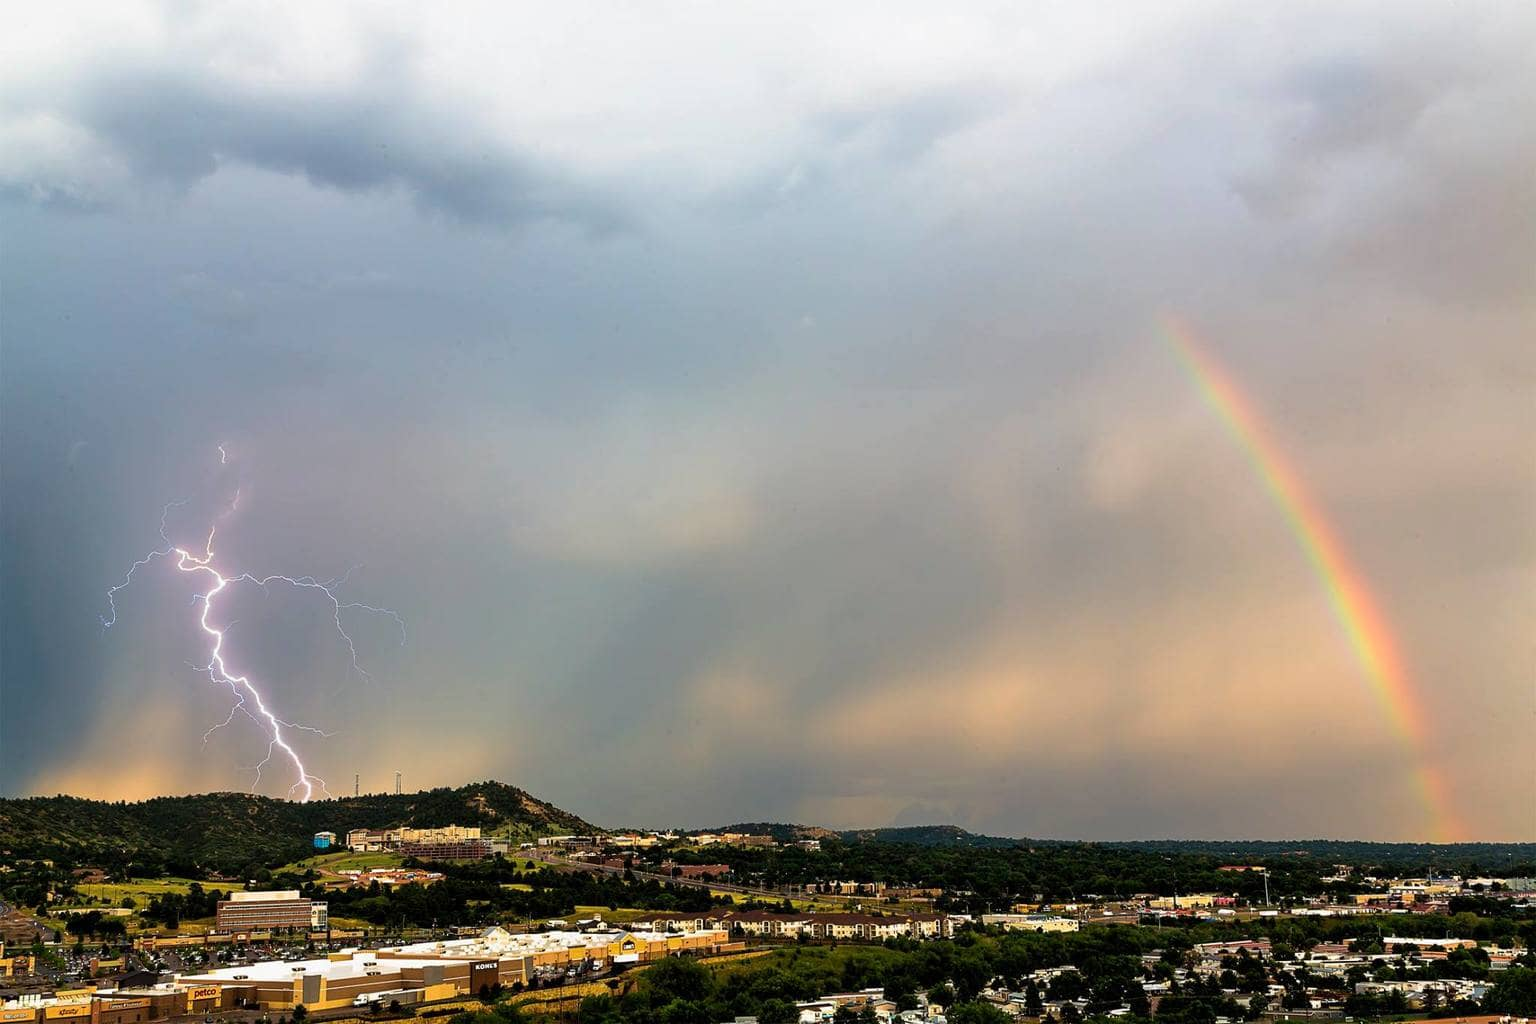 A lightning bolt and rainbow sharing the sky in Colorado Springs. 08/27/2015